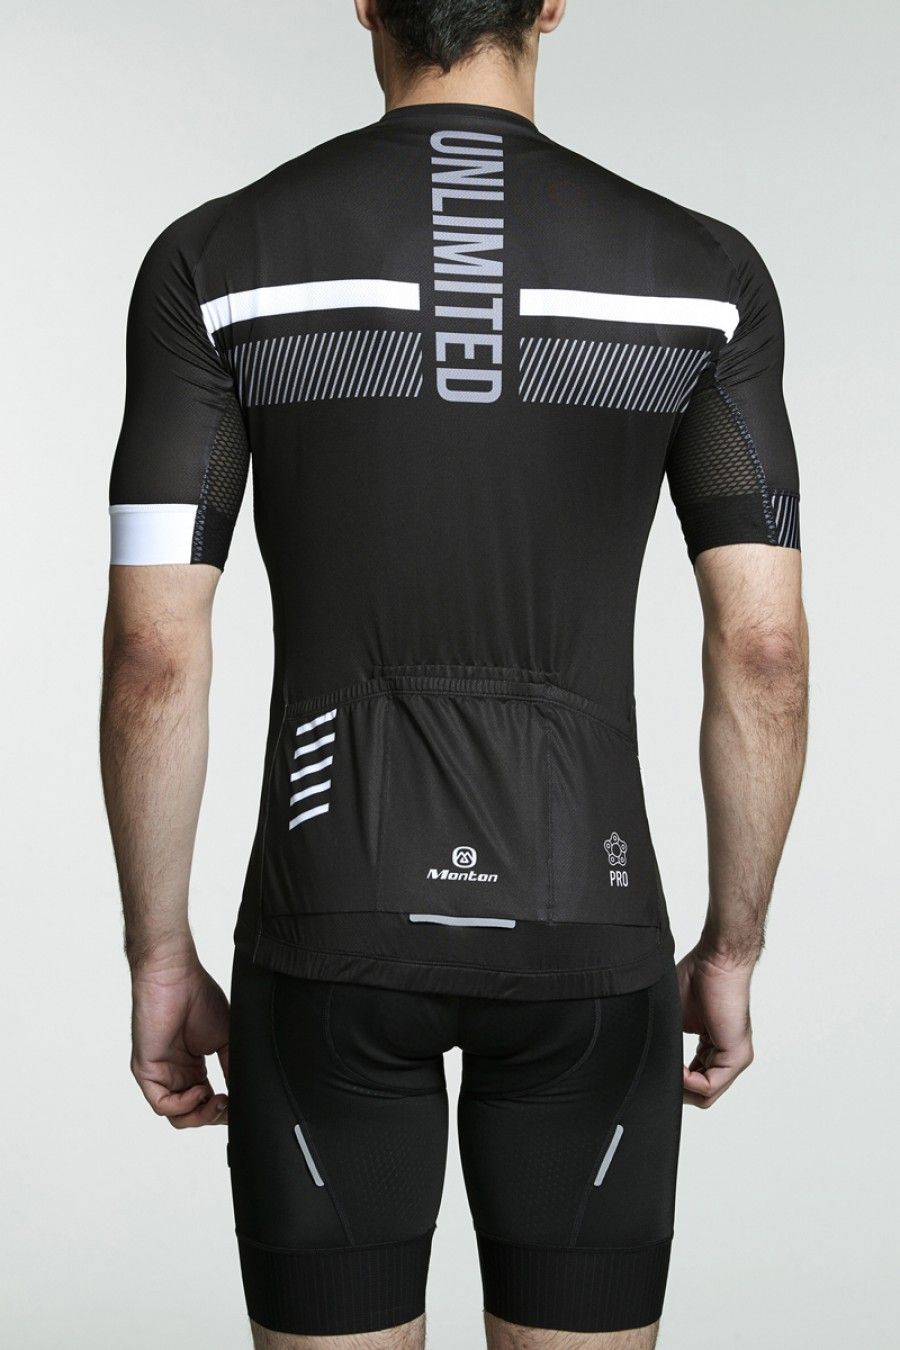 Wholesale Cool Men's Cycling Jersey from Manufacturer